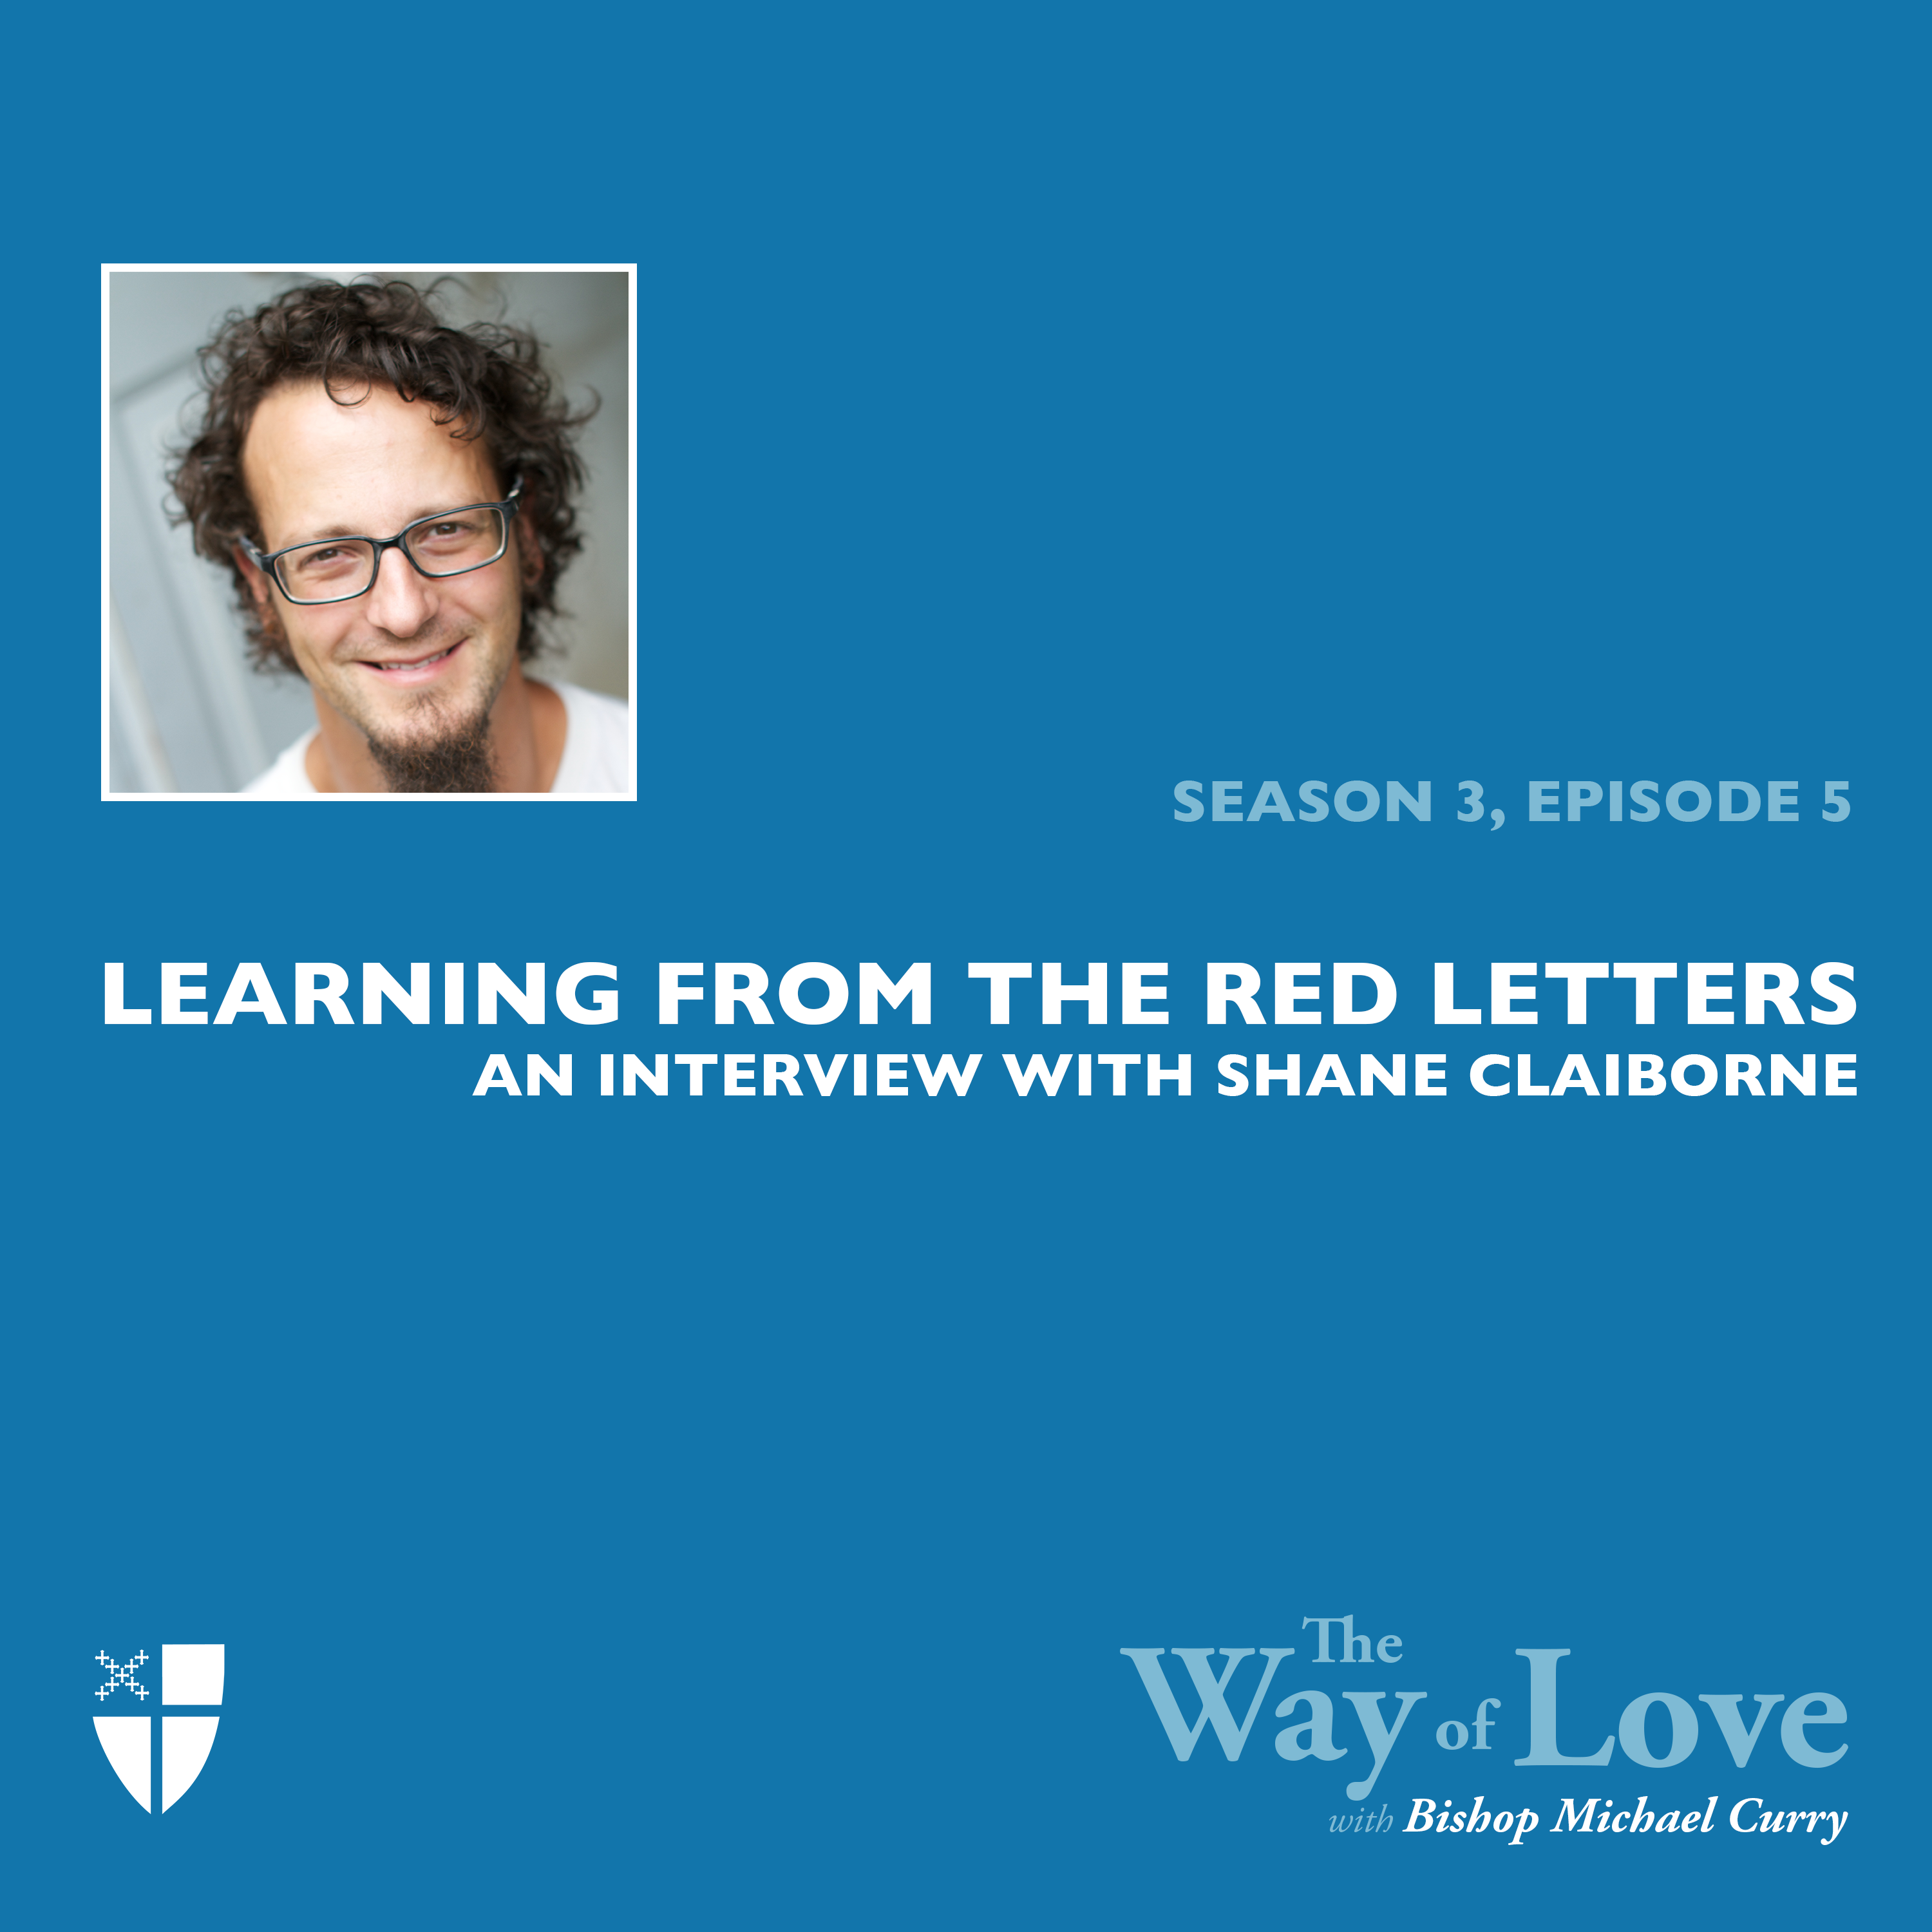 Learning from the Red Letters with Shane Claiborne